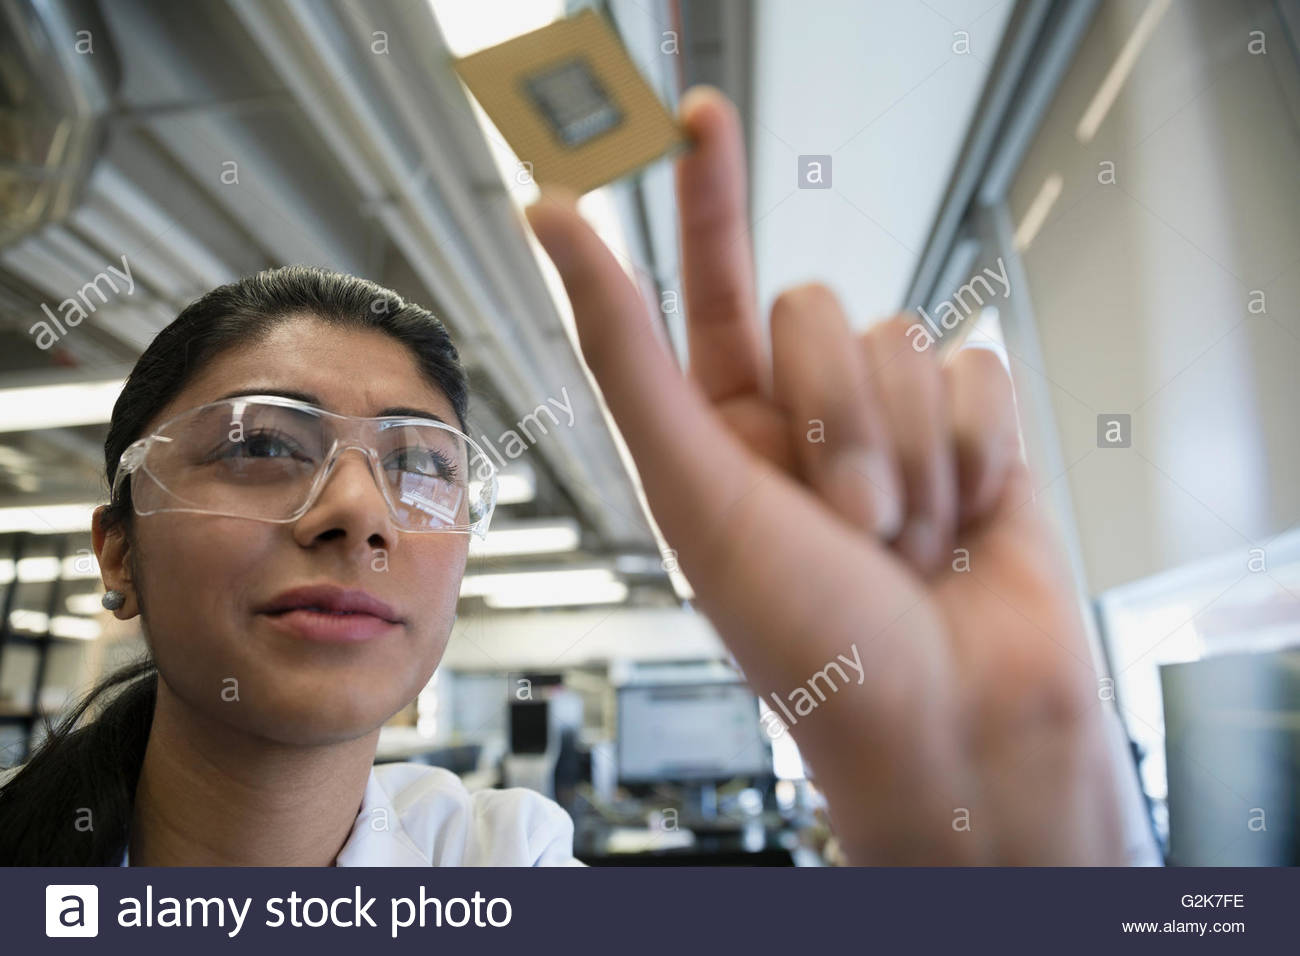 Engineer examining computer chip Stock Photo